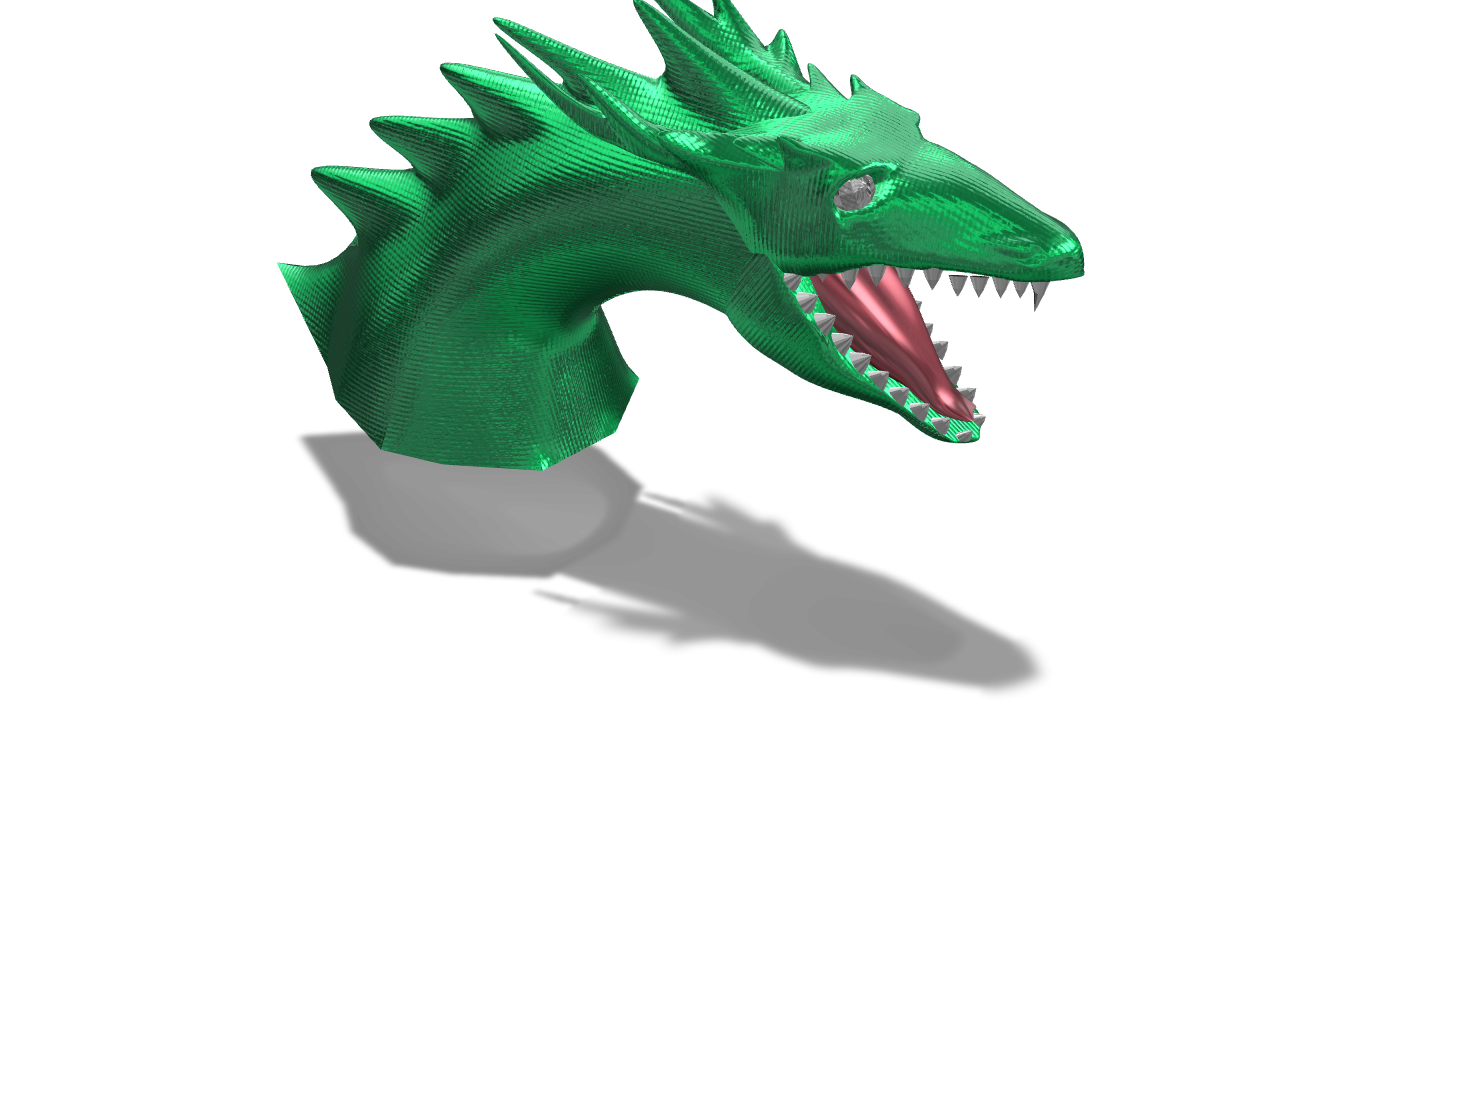 dragon - 3D design by Lode Grsman May 25, 2018